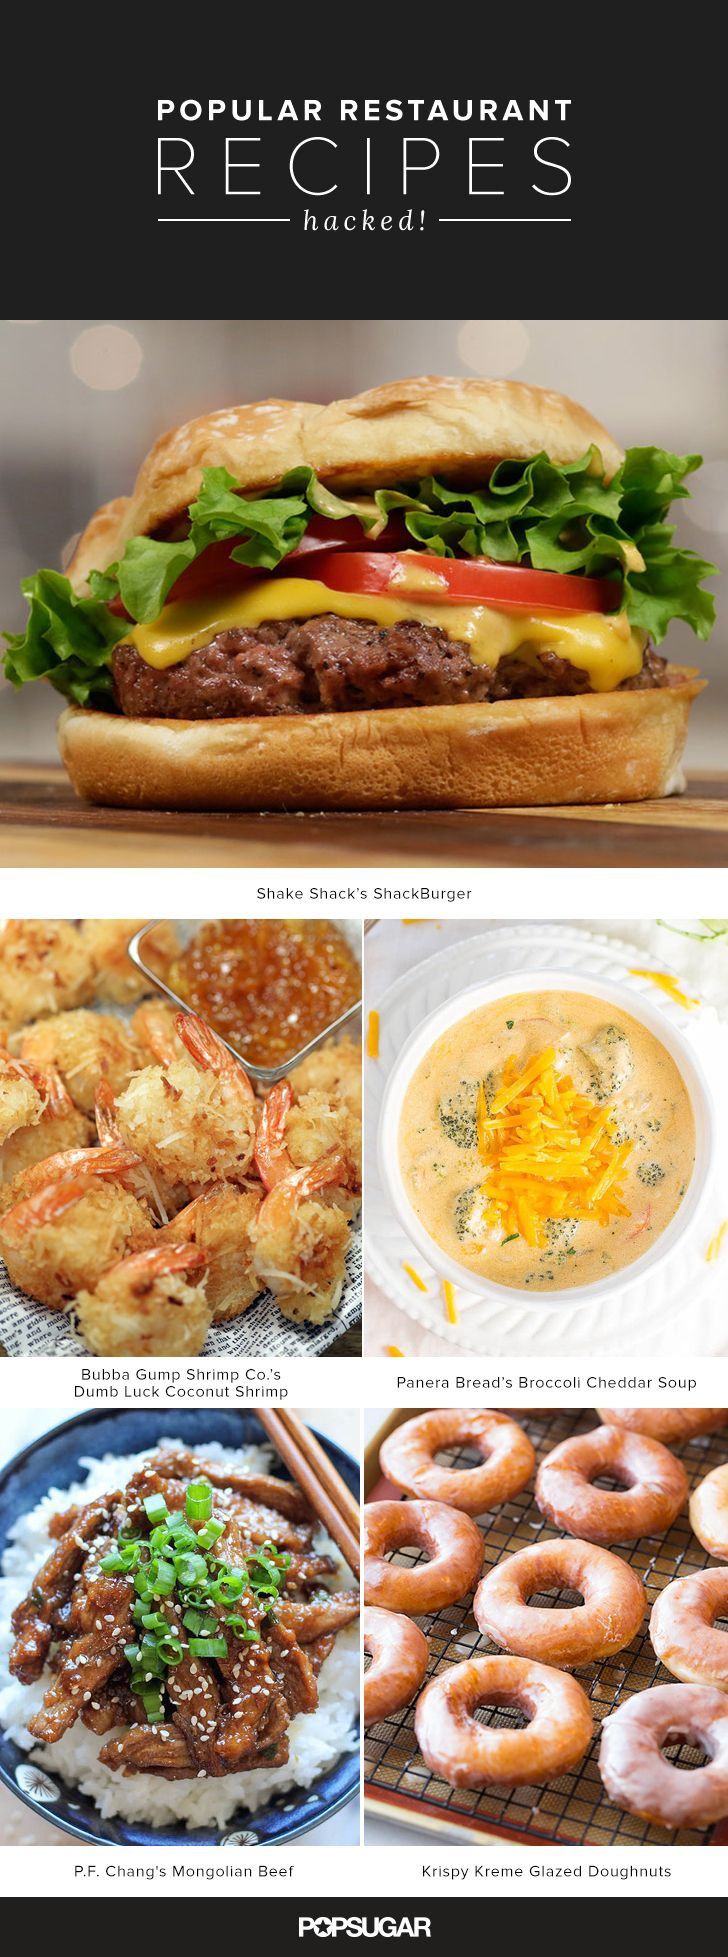 From Magnolia Bakery's classic vanilla cupcakes to Red Lobster's addictive Cheddar Bay Biscuits, we've rounded up the best restaurant copycat recipes. (Some even come straight from the source!) Keep reading for 68 tempting options, but be warned: you're about to get very, very hungry.